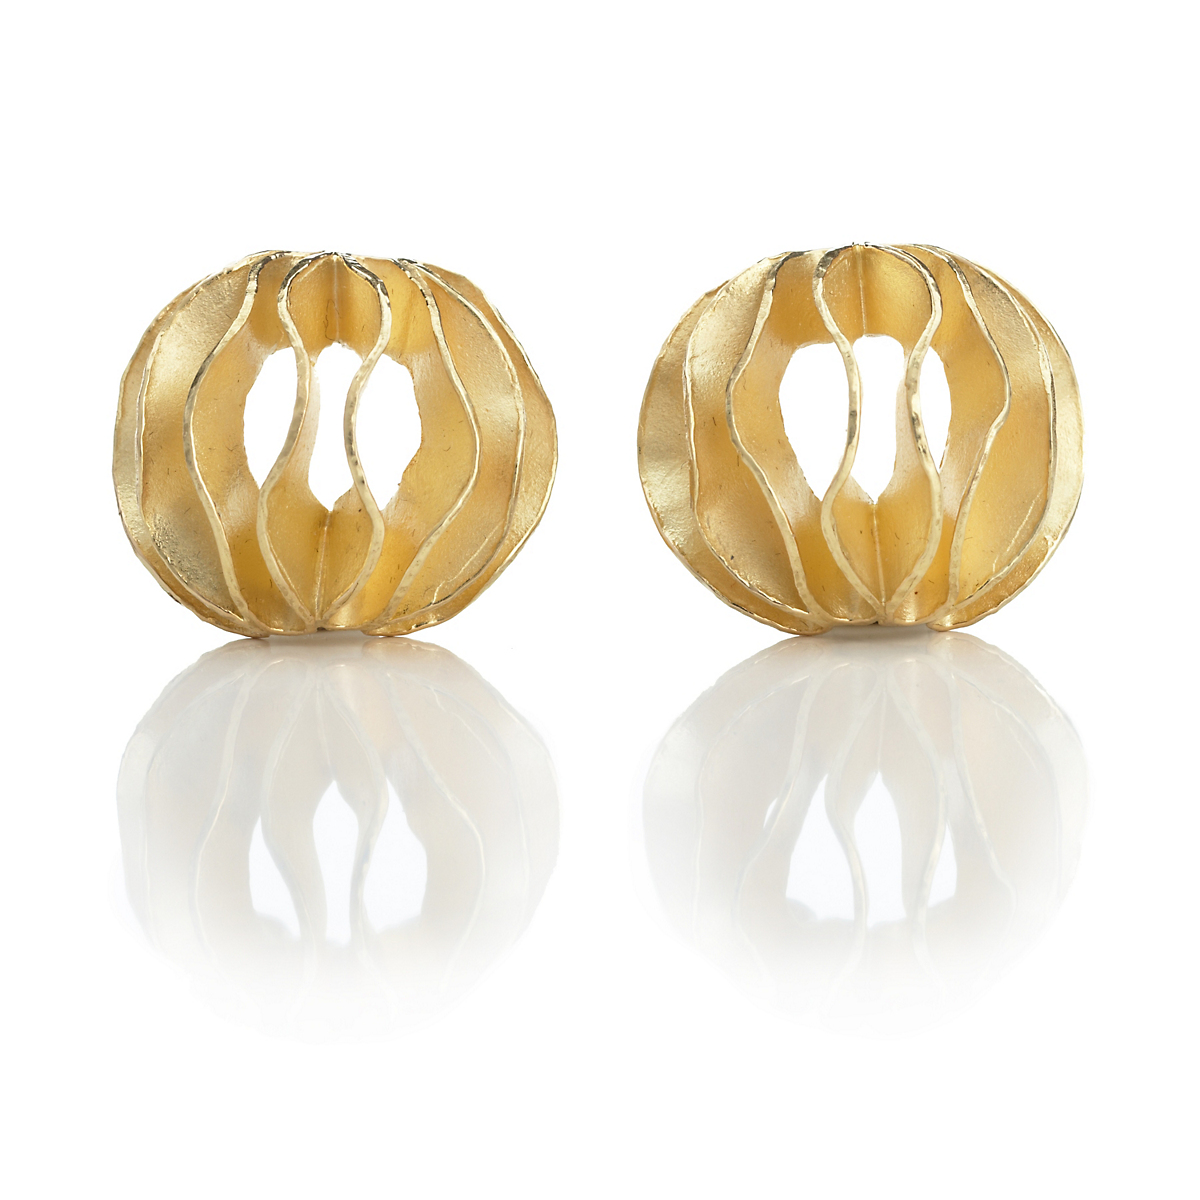 Barbara Heinrich Large Gold Waveball Earrings